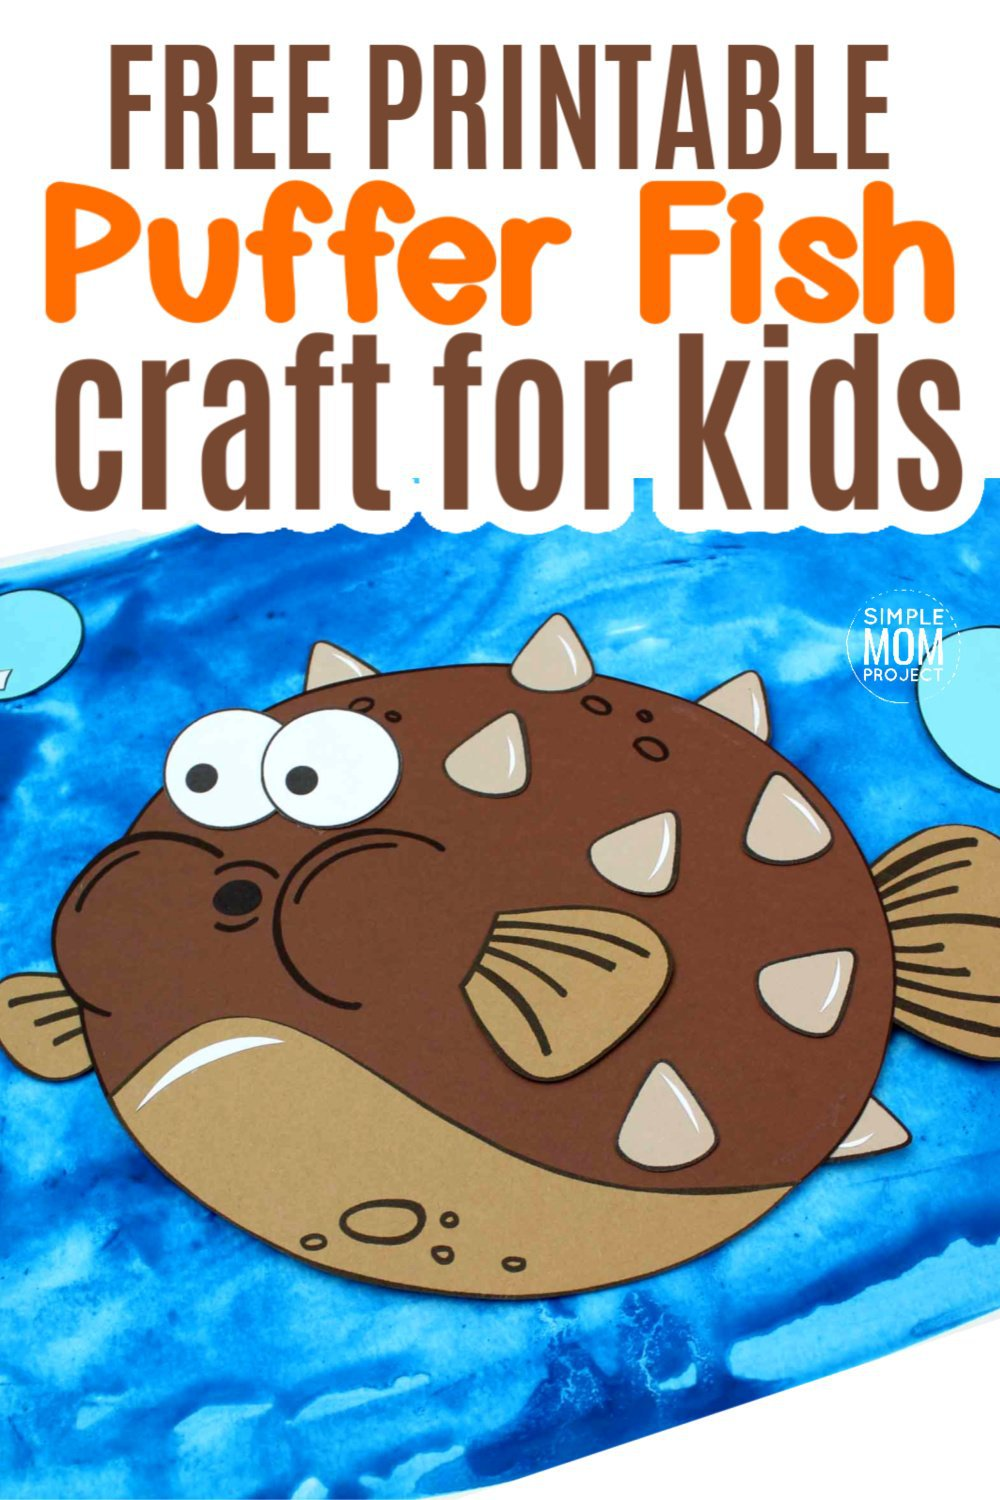 Are you feeling crafty this morning? Use our free printable blowfish puffer fish template to make this adorable ocean themed craft! You don't need a paper plate to make this blow fish and puffer fish friend. Just grab your kids, preschoolers or toddlers and start crafting! #blowfish #pufferfish #blowfishcrafts #pufferfishcrafts #oceananimals #oceananimalcrafts